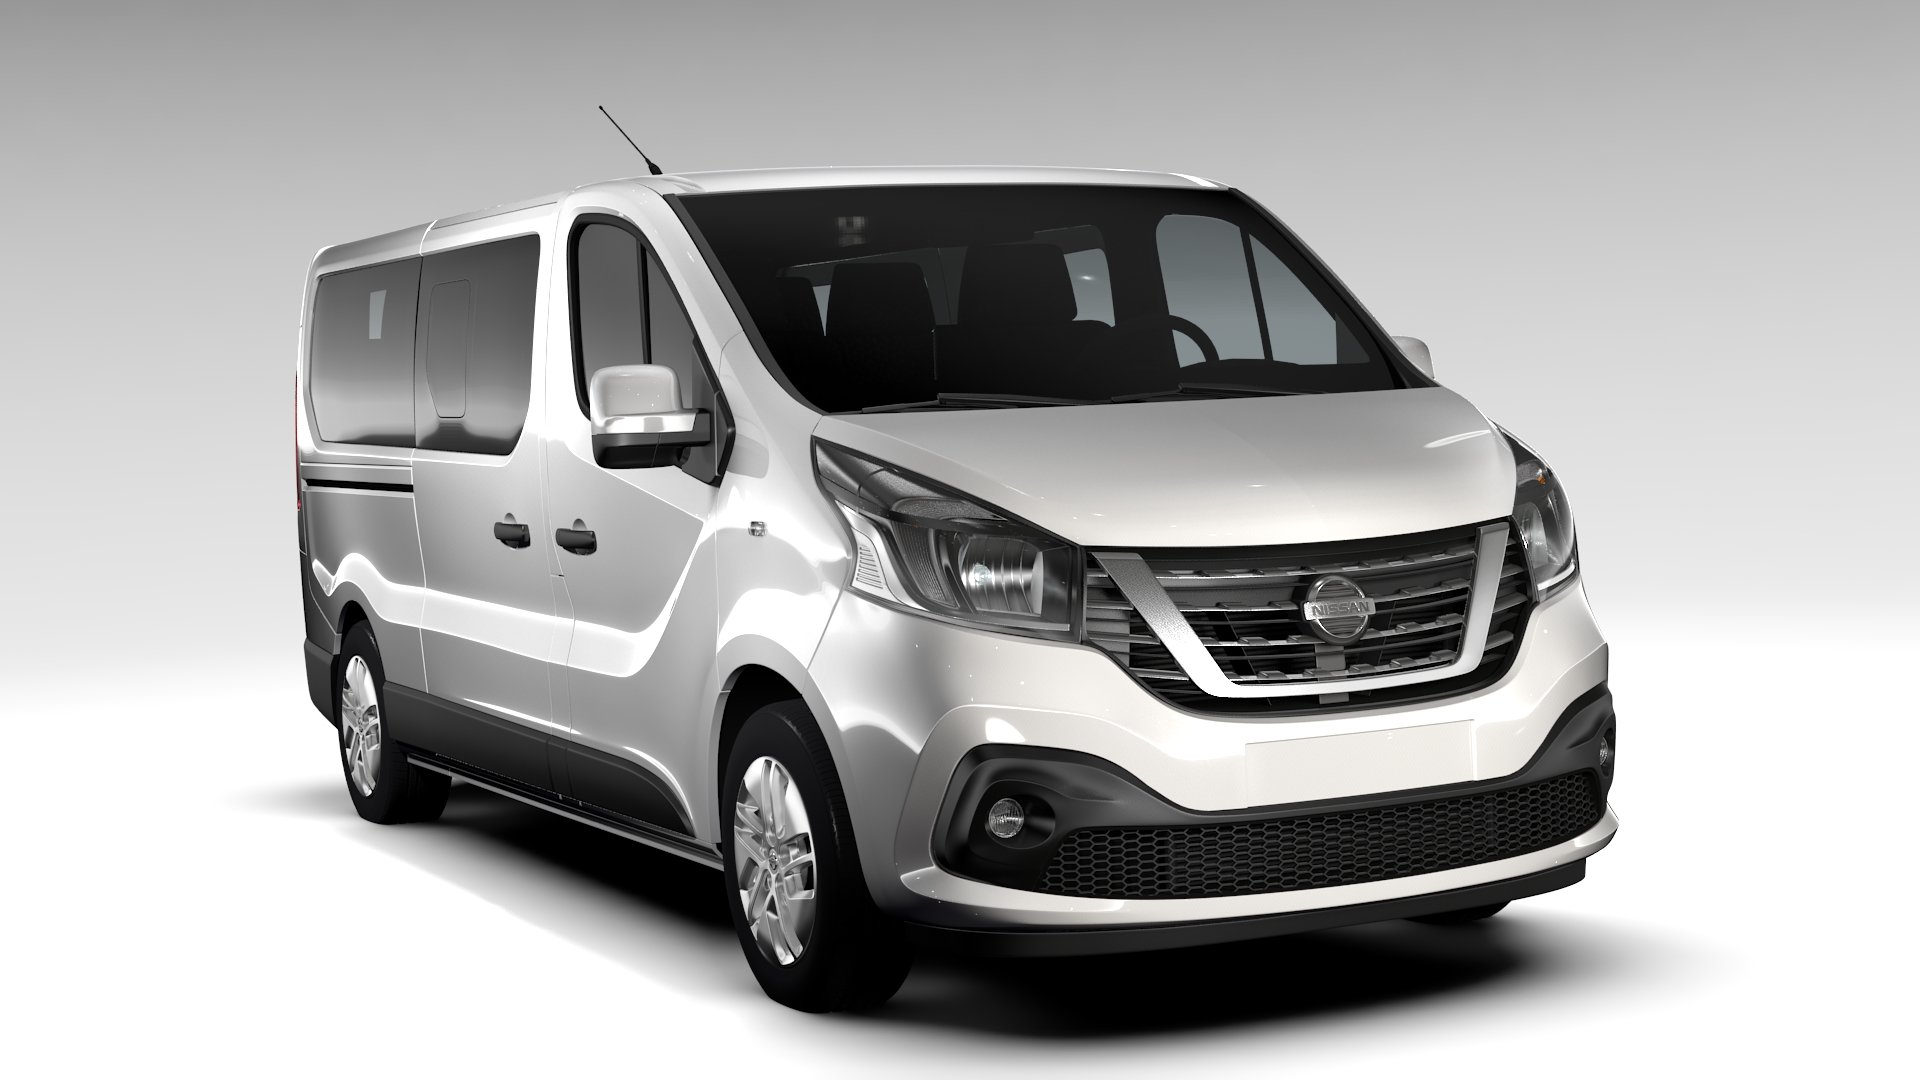 nissan nv 300 combi l2h1 2016 vehicles creative market. Black Bedroom Furniture Sets. Home Design Ideas